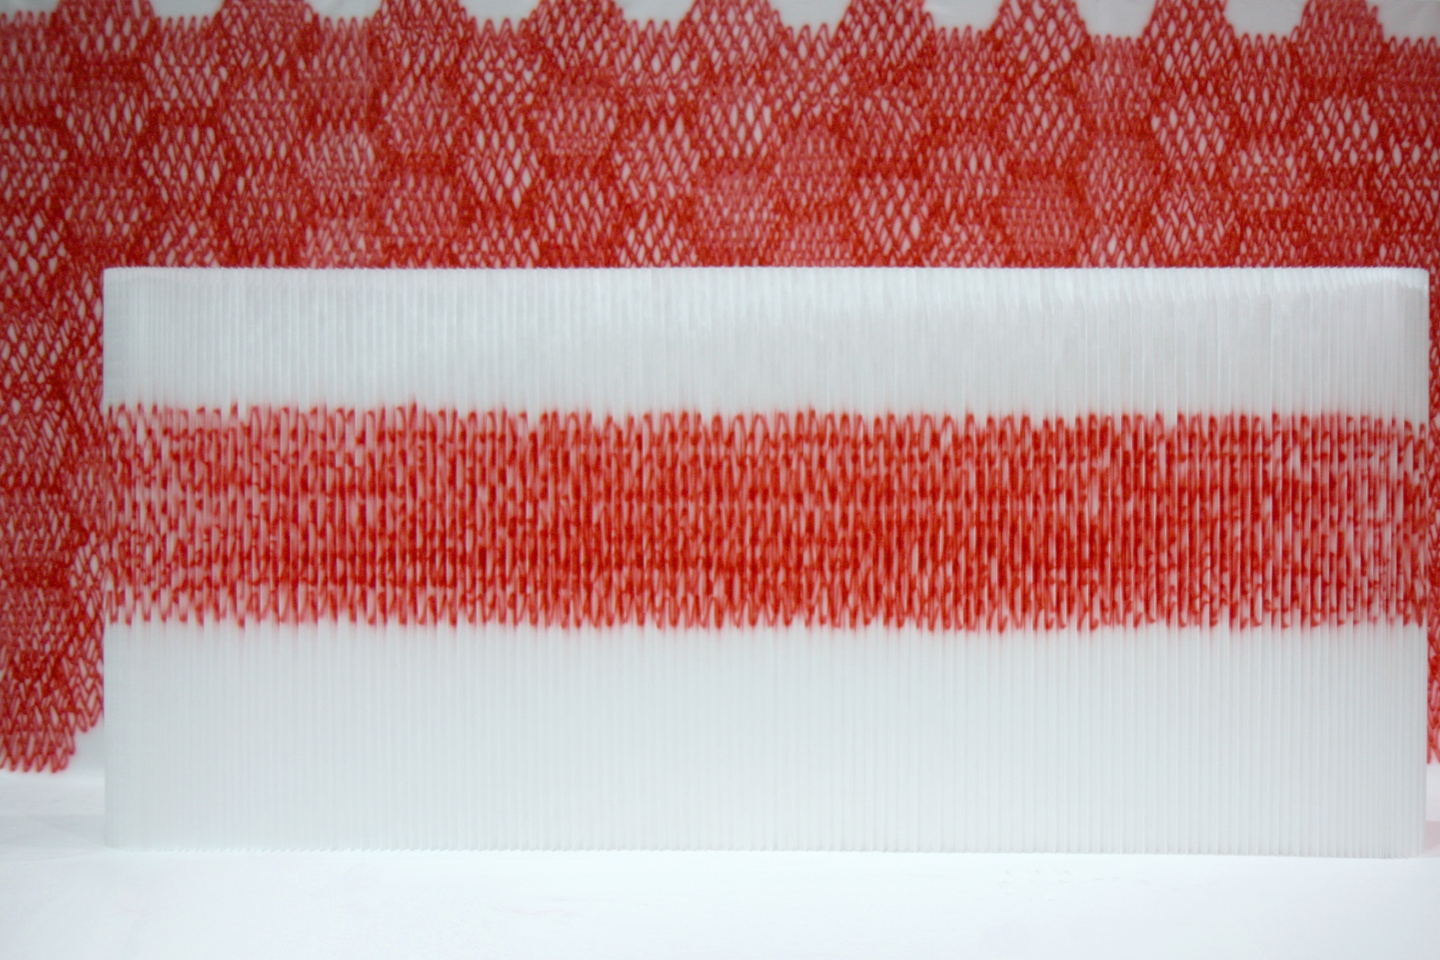 Sasaki heartbeat softwall installation at Dwell on Design in Los Angeles